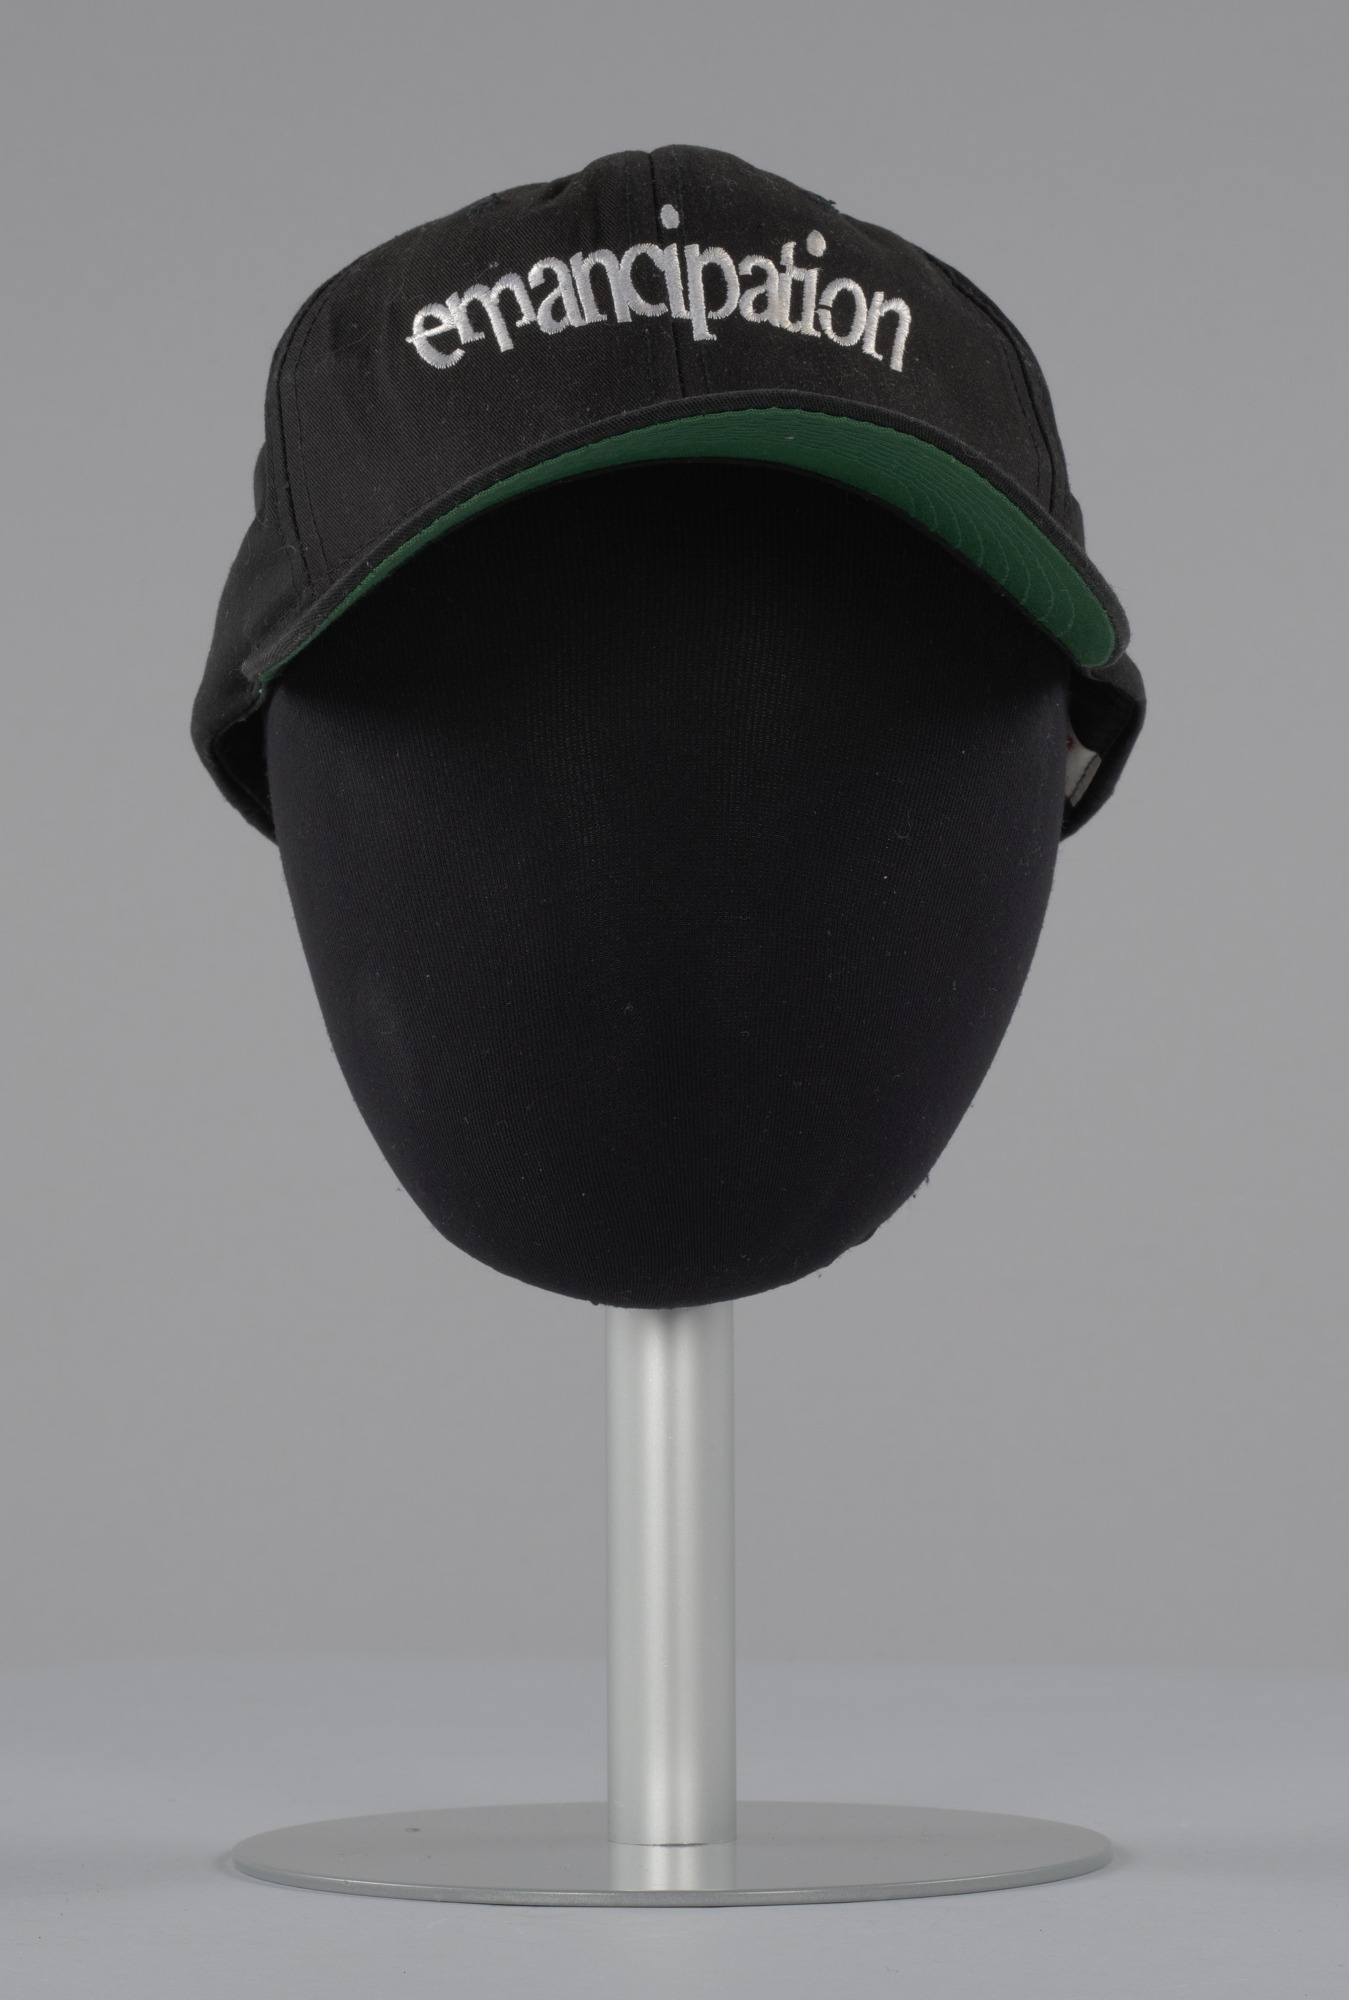 Image 1 for Baseball cap souvenir from Prince's Jam of the Year Tour